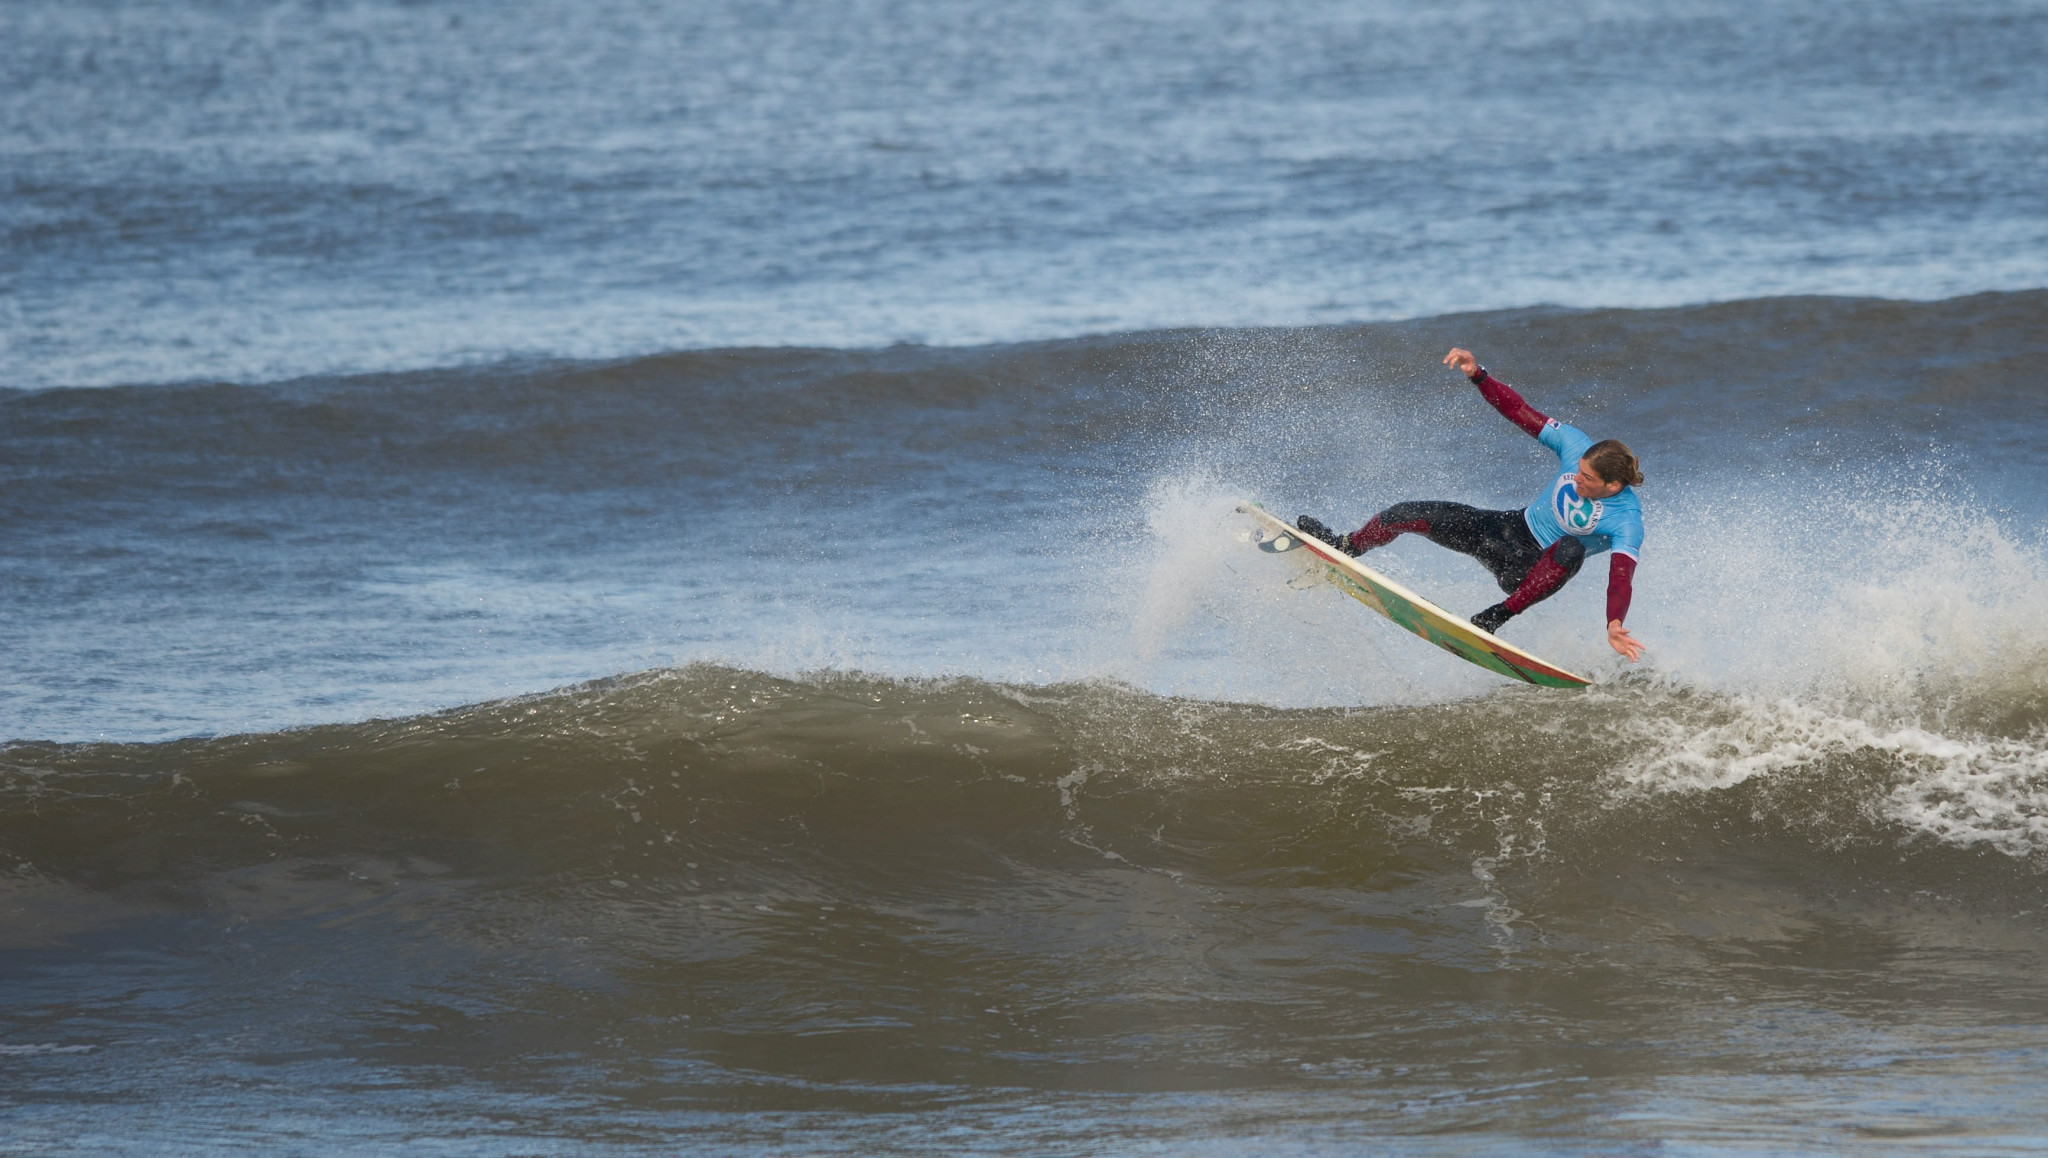 VISSLA to continue sponsorship of ISA World Junior Surfing Championship